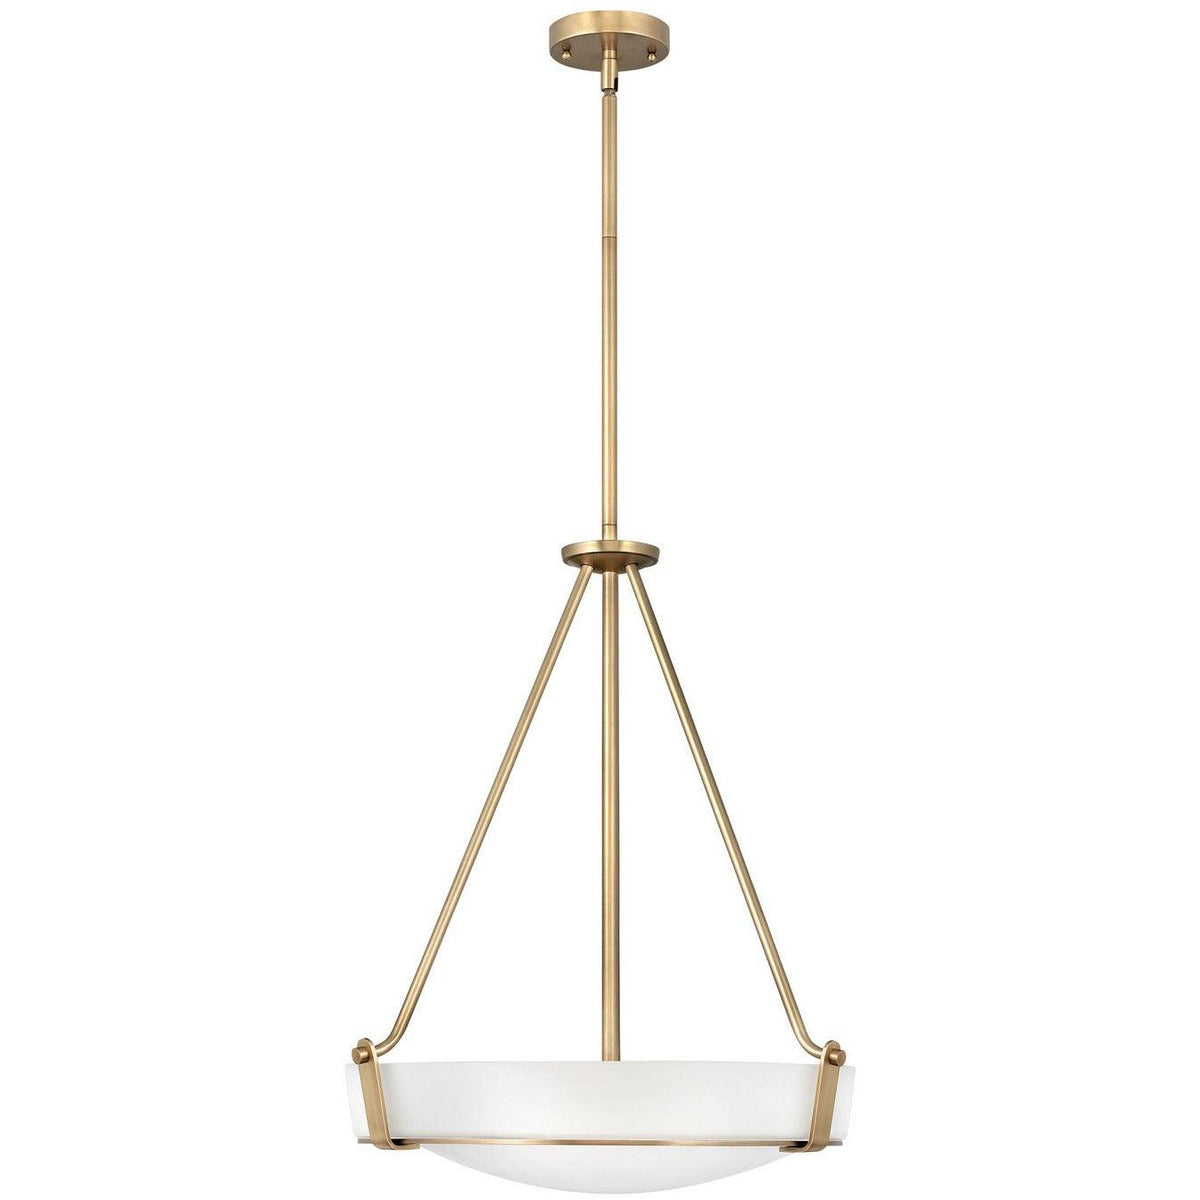 Hinkley Canada - 3222HB - Four Light Chandelier - Hathaway - Heritage Brass